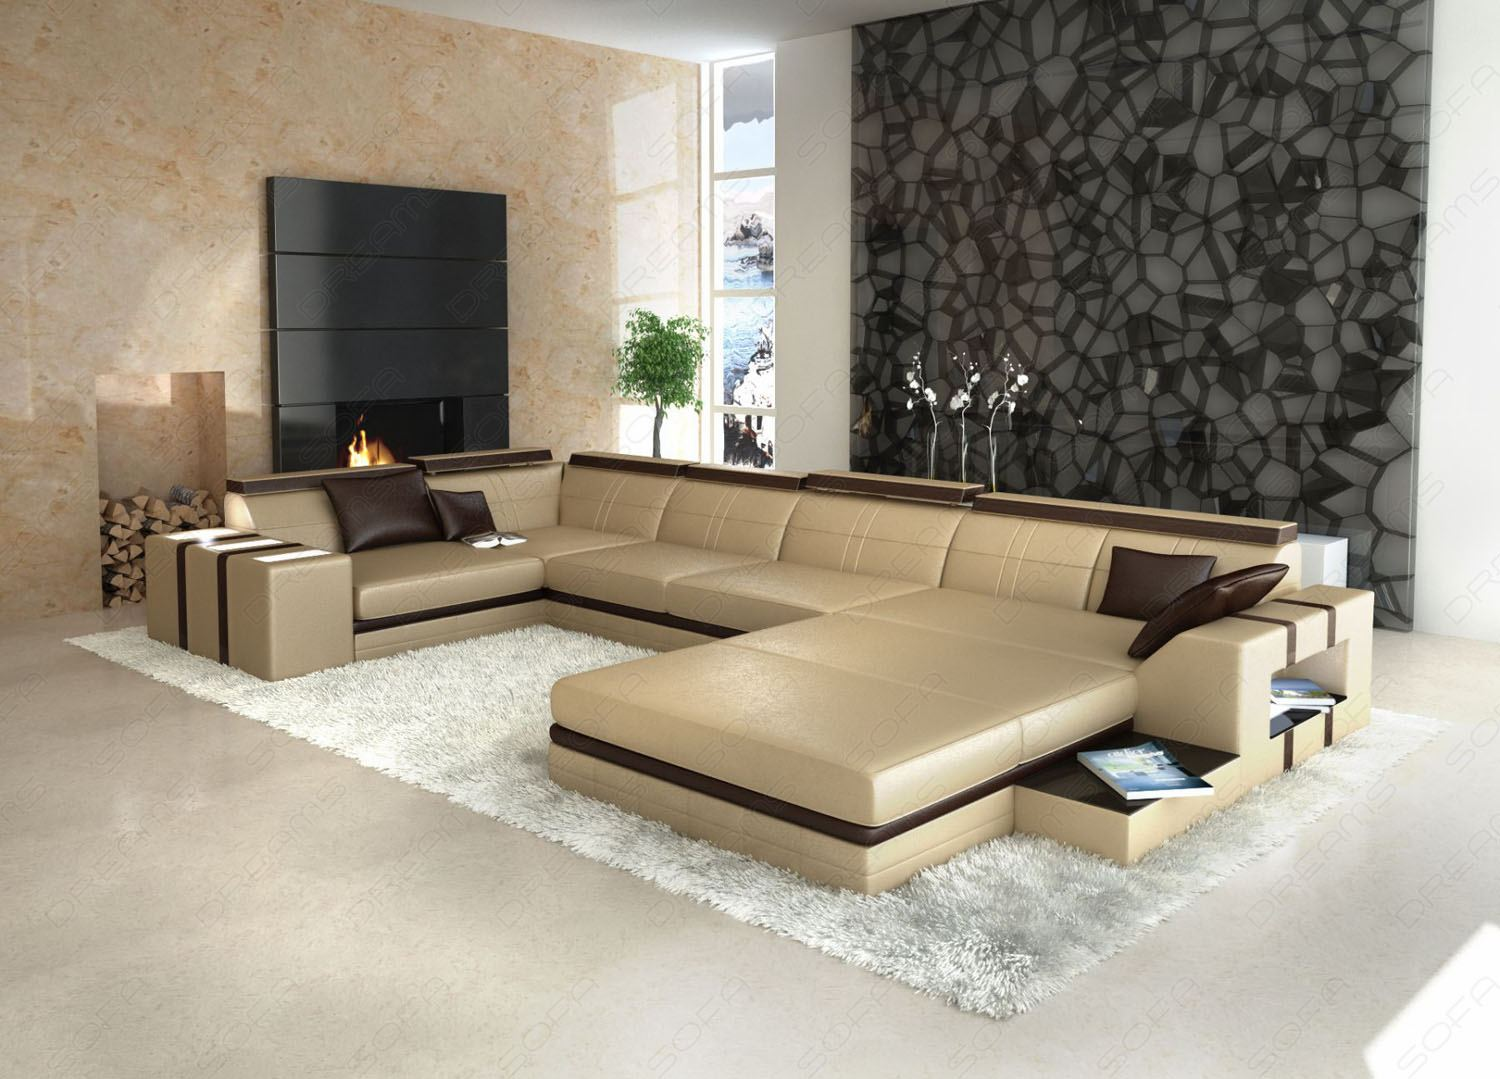 ledersofa asti u form beige braun wohnlandschaft beleuchtung ebay. Black Bedroom Furniture Sets. Home Design Ideas